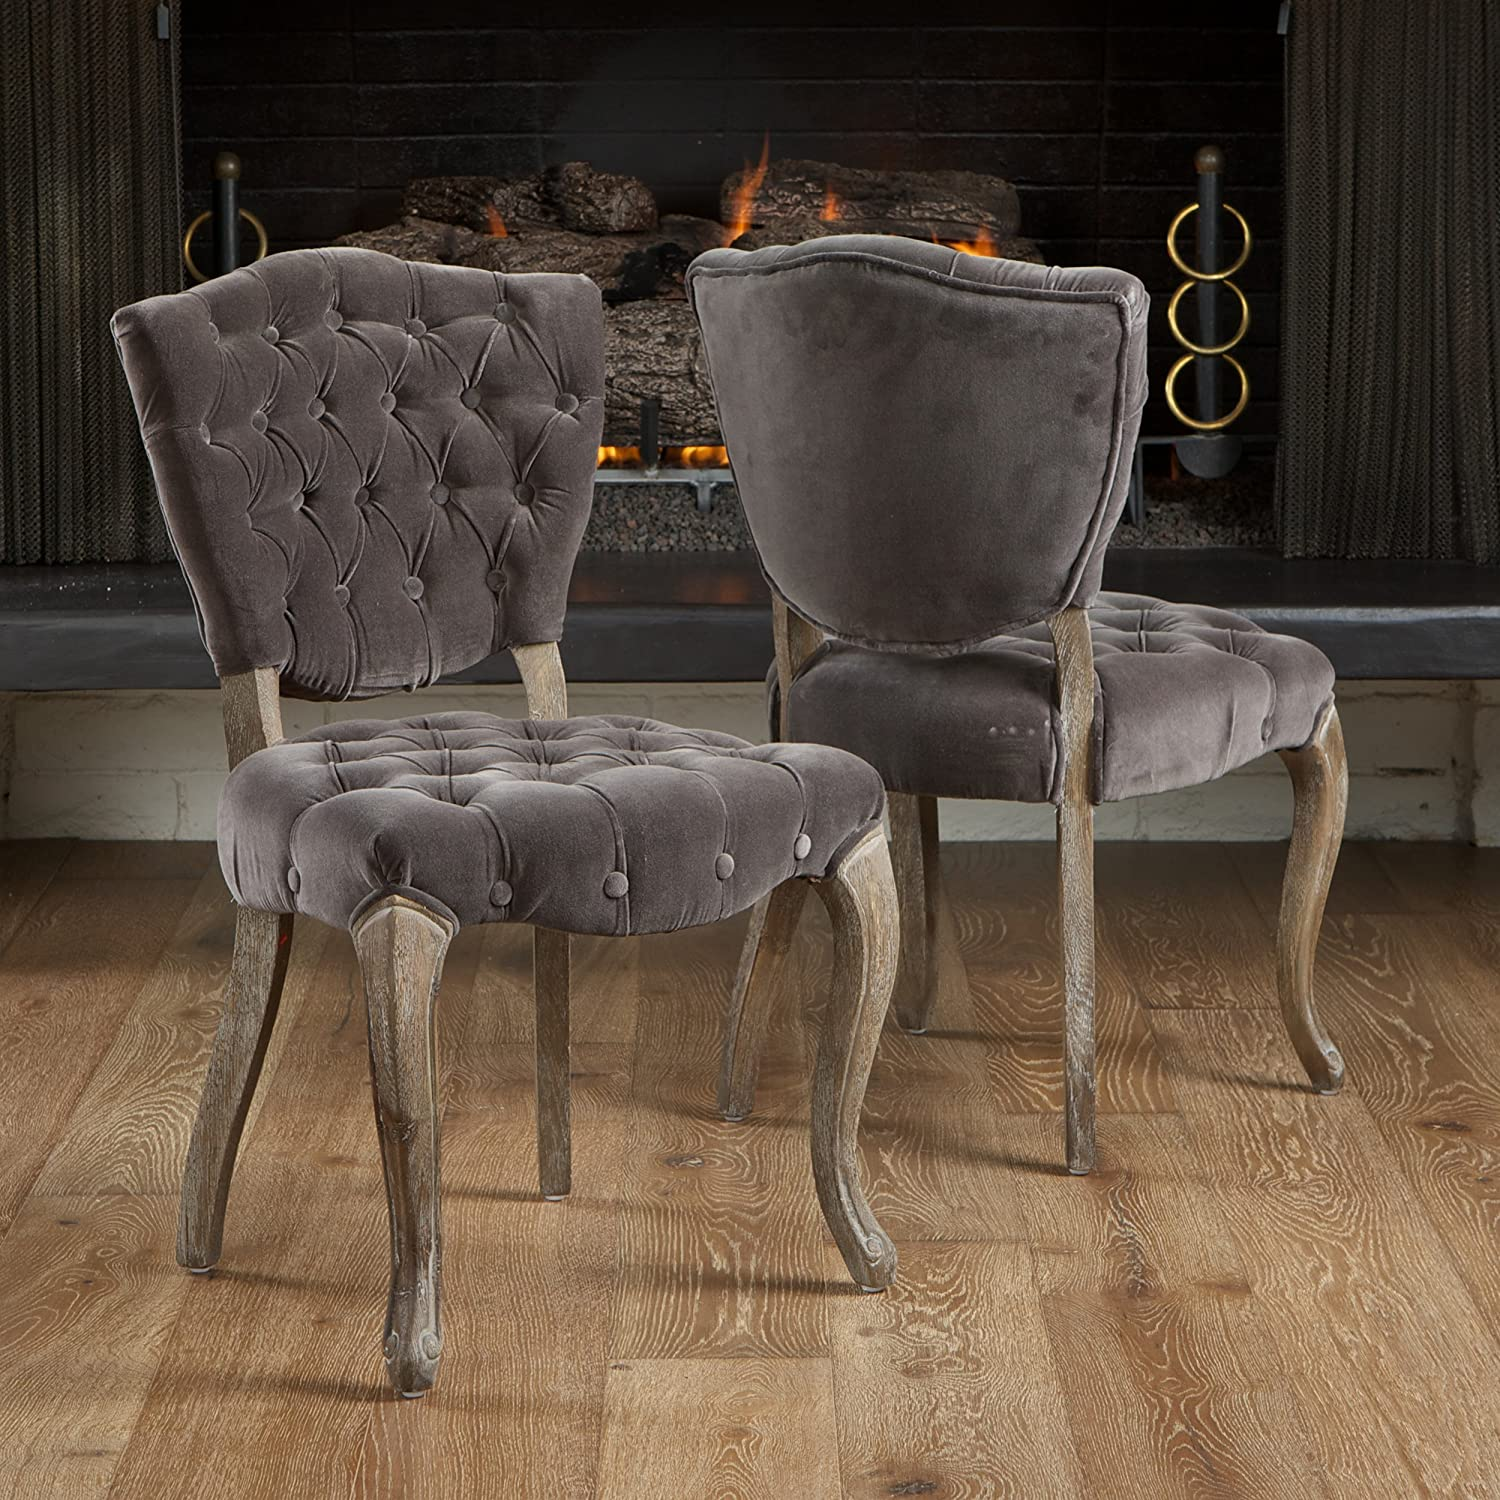 Christopher Knight Home 230343 Oakdale Button Tufted Fabric European Style Dining Chair Set of 2 Grey